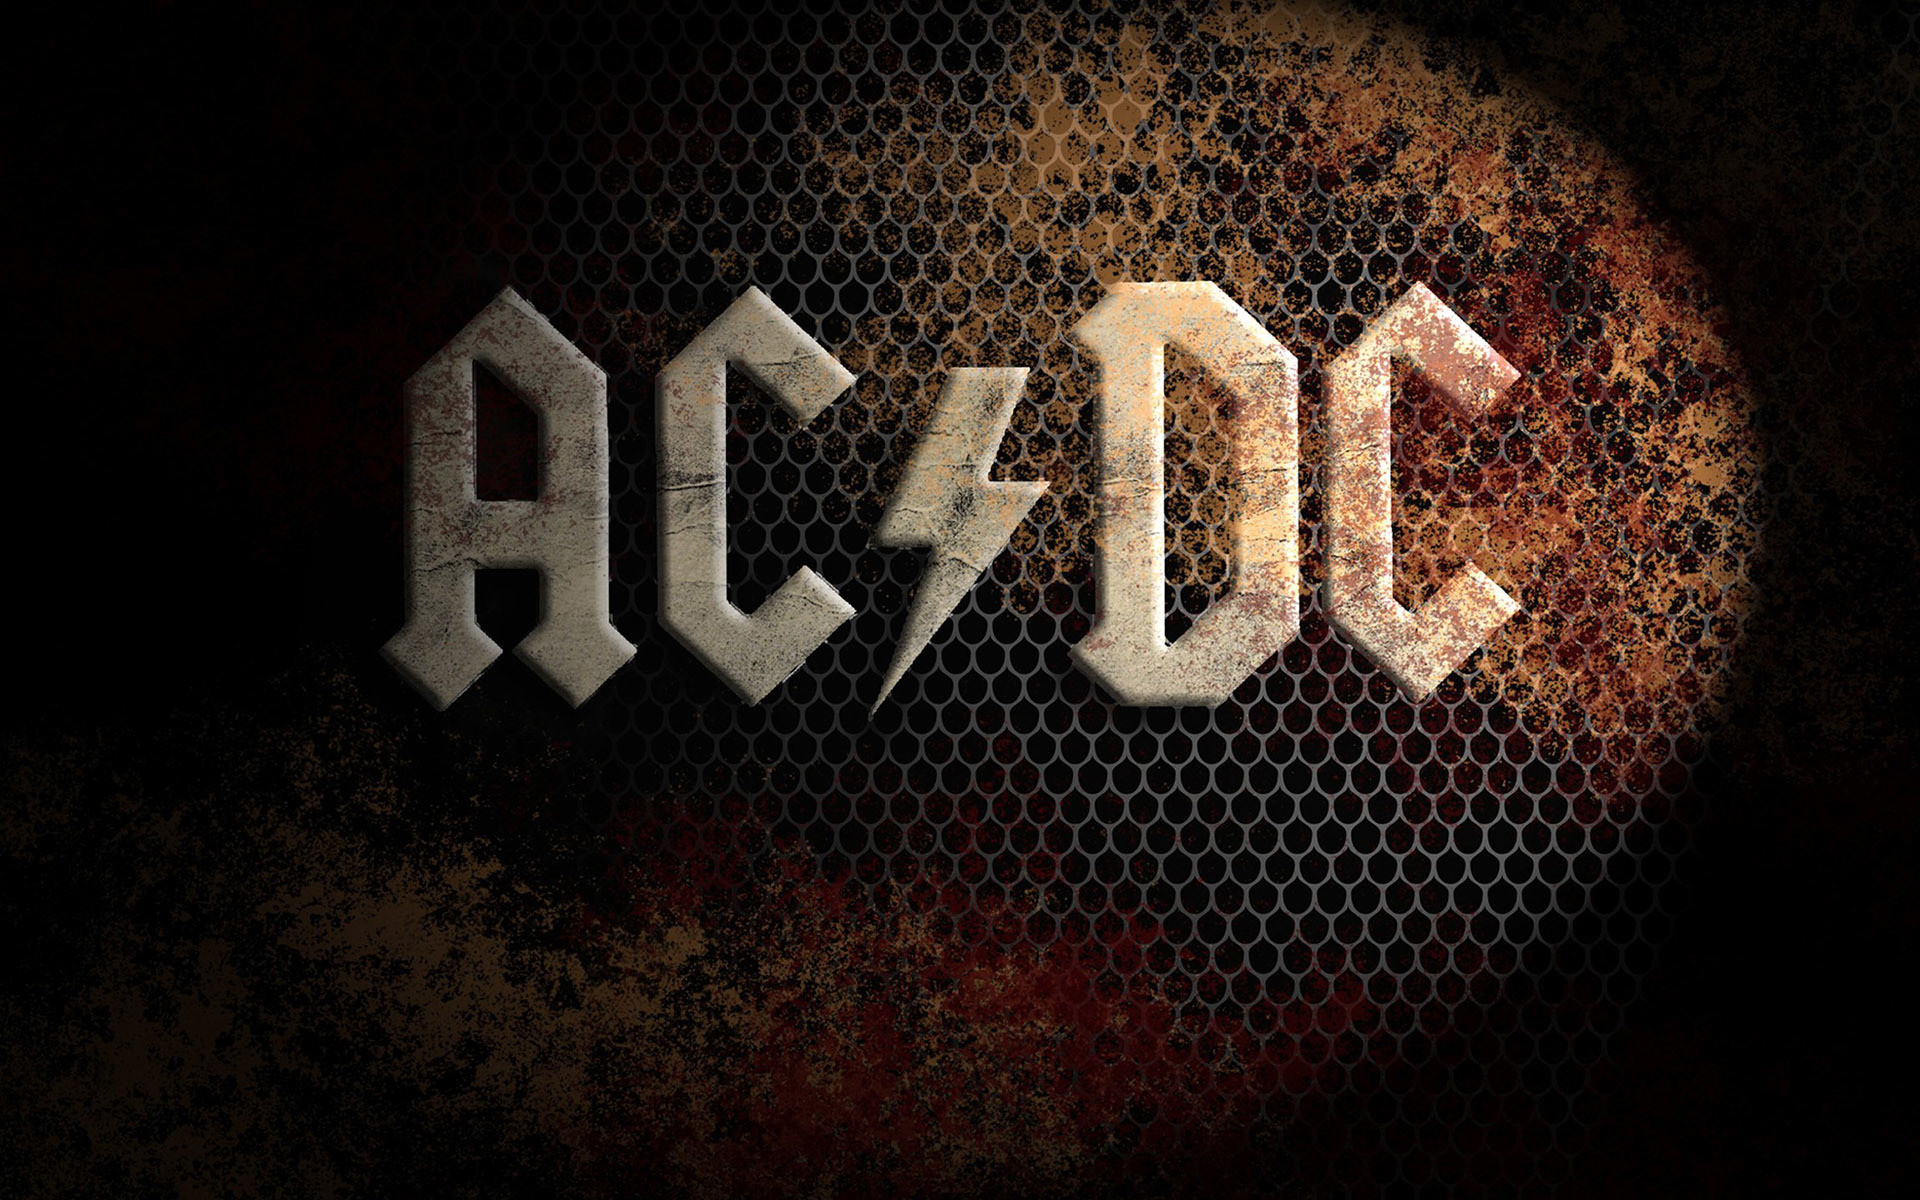 1920x1200 ... AC/DC HD Wallpaper